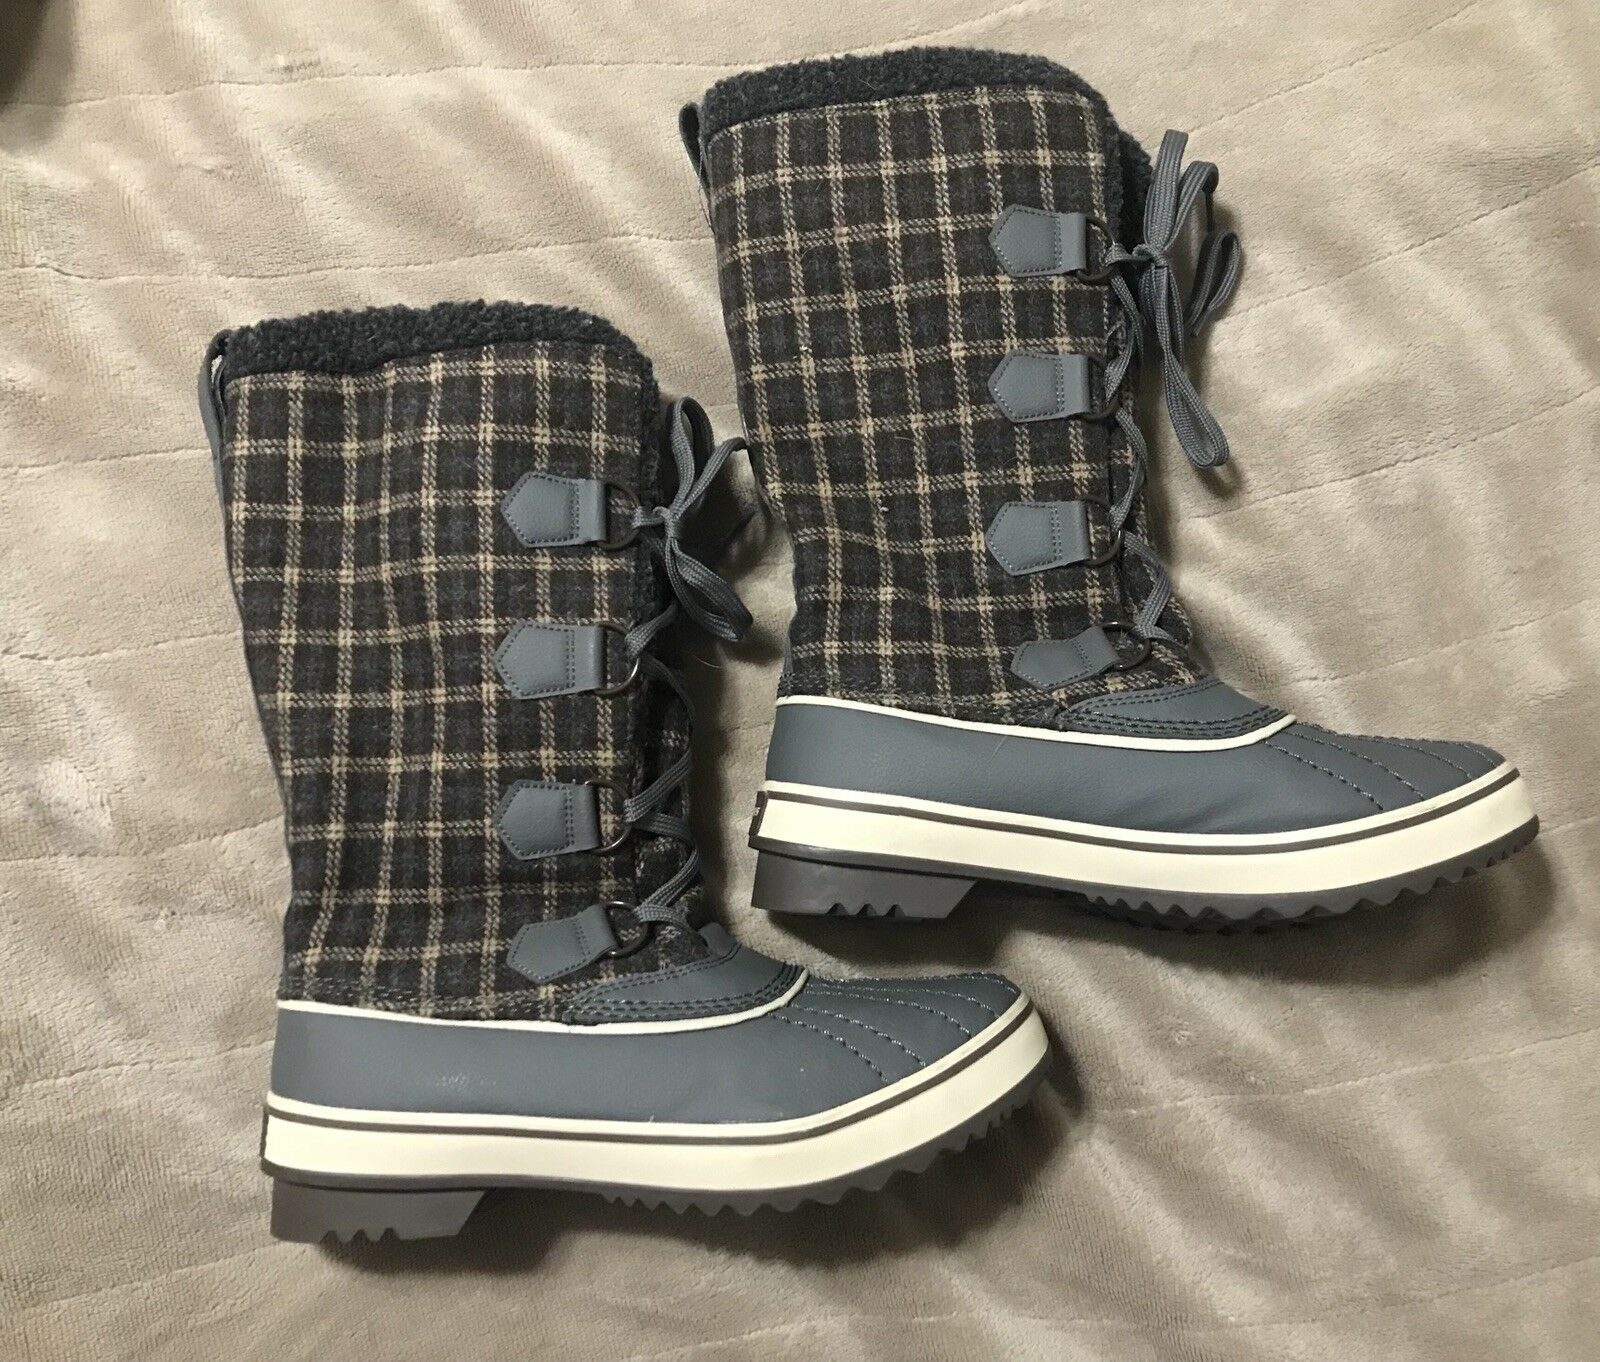 Skechers NWOT 9 Outdoor Boots Plaid